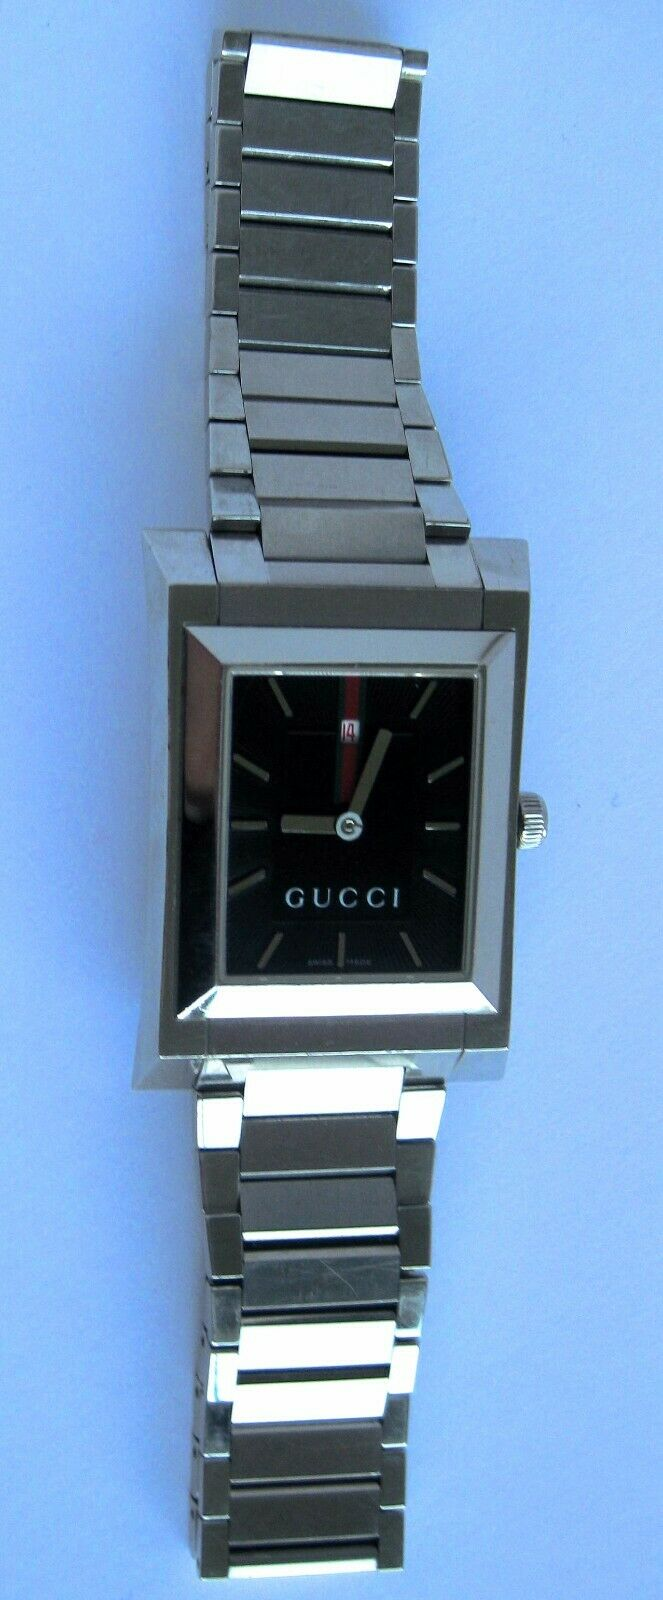 GUCCI 111M Quartz Stainless Steel Rectangular Bracelet Watch 28mm